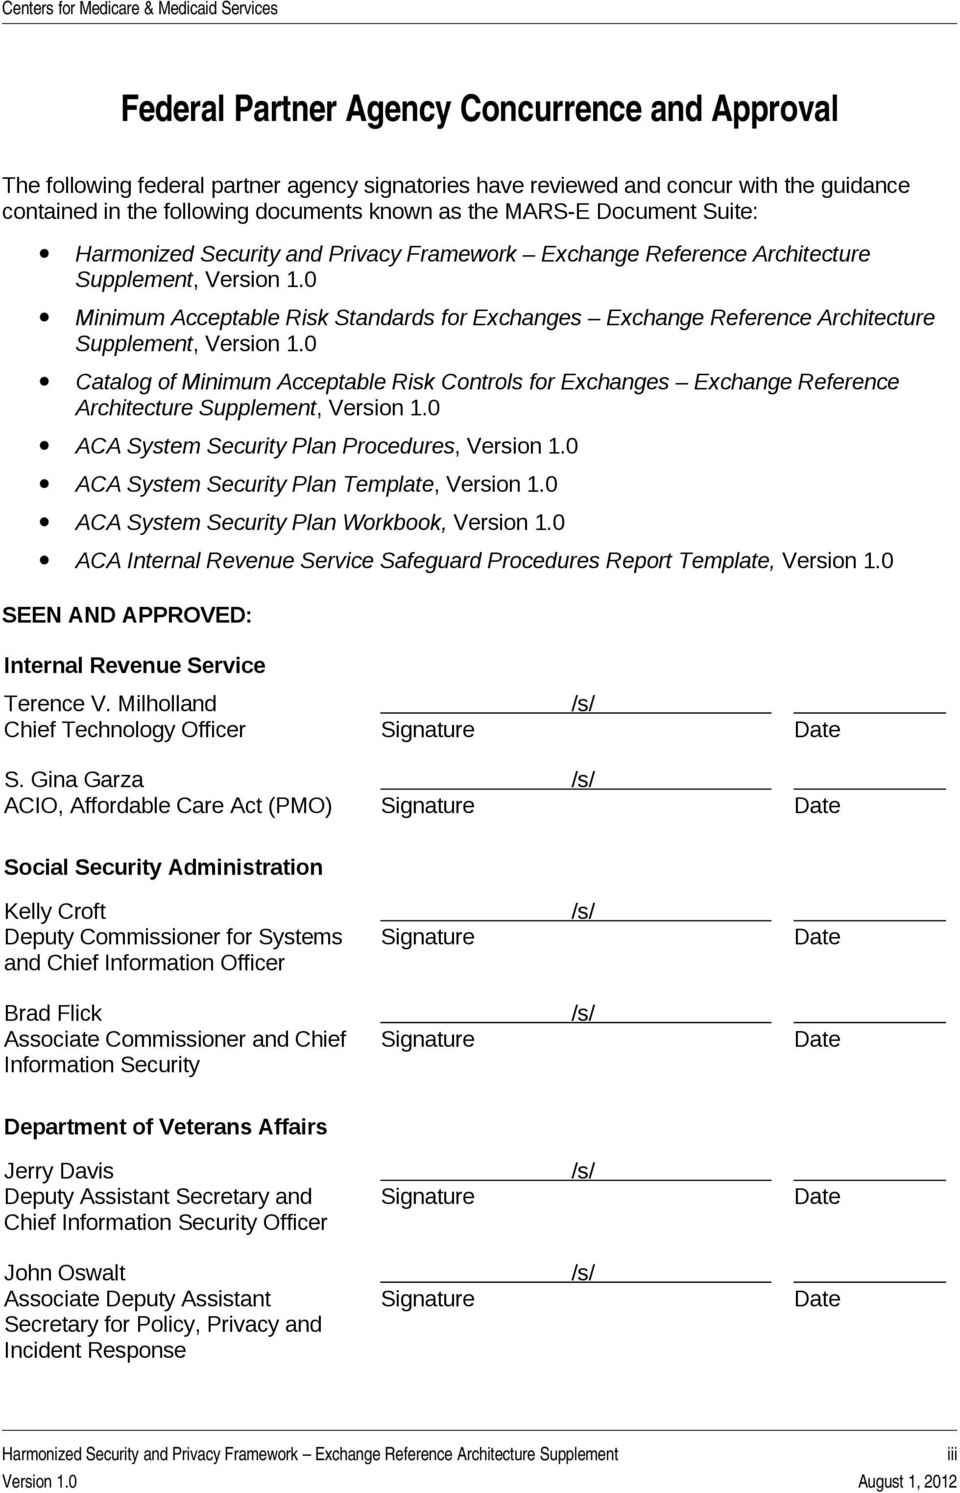 Harmonized Security And Privacy Framework Exchange Reference